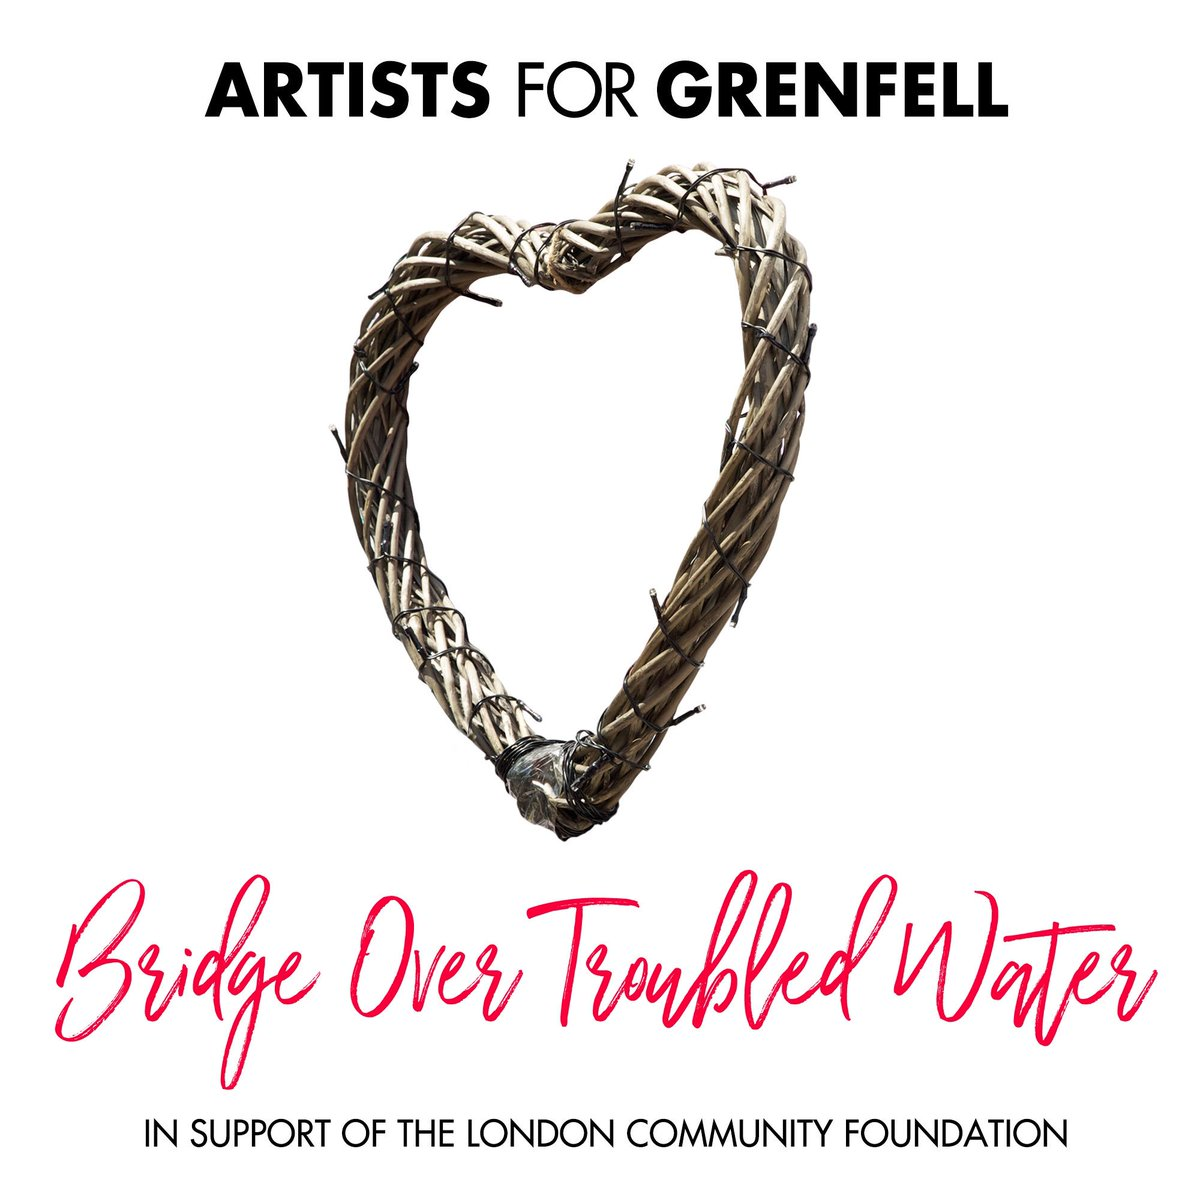 My thoughts go out to all of those affect by the Grenfell tower fire. Please donate what you can 🙏🏼 https://t.co/NoY66VkdKu